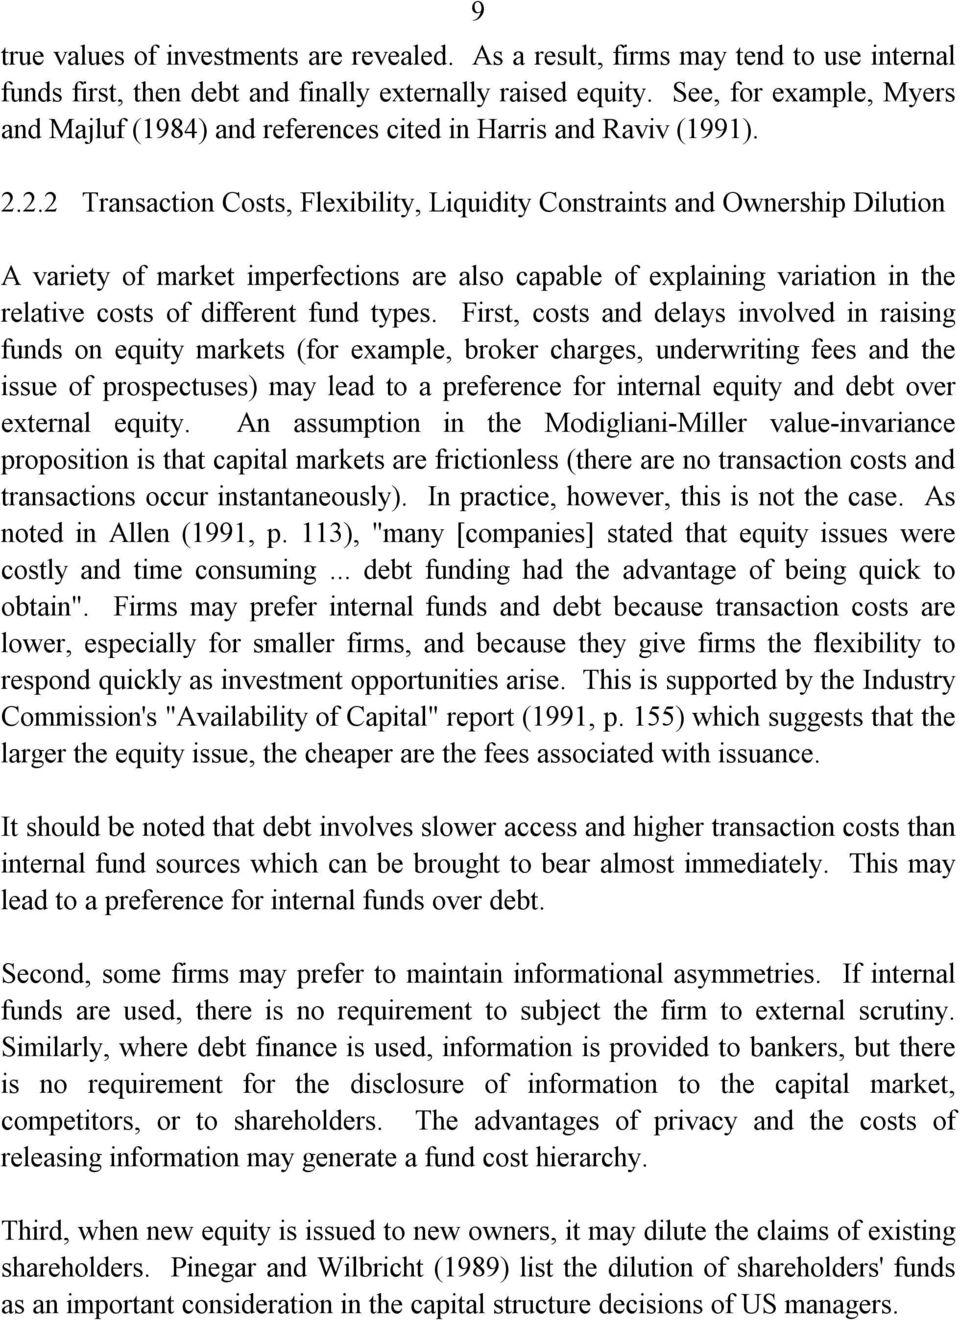 2.2 Transaction Costs, Flexibility, Liquidity Constraints and Ownership Dilution A variety of market imperfections are also capable of explaining variation in the relative costs of different fund